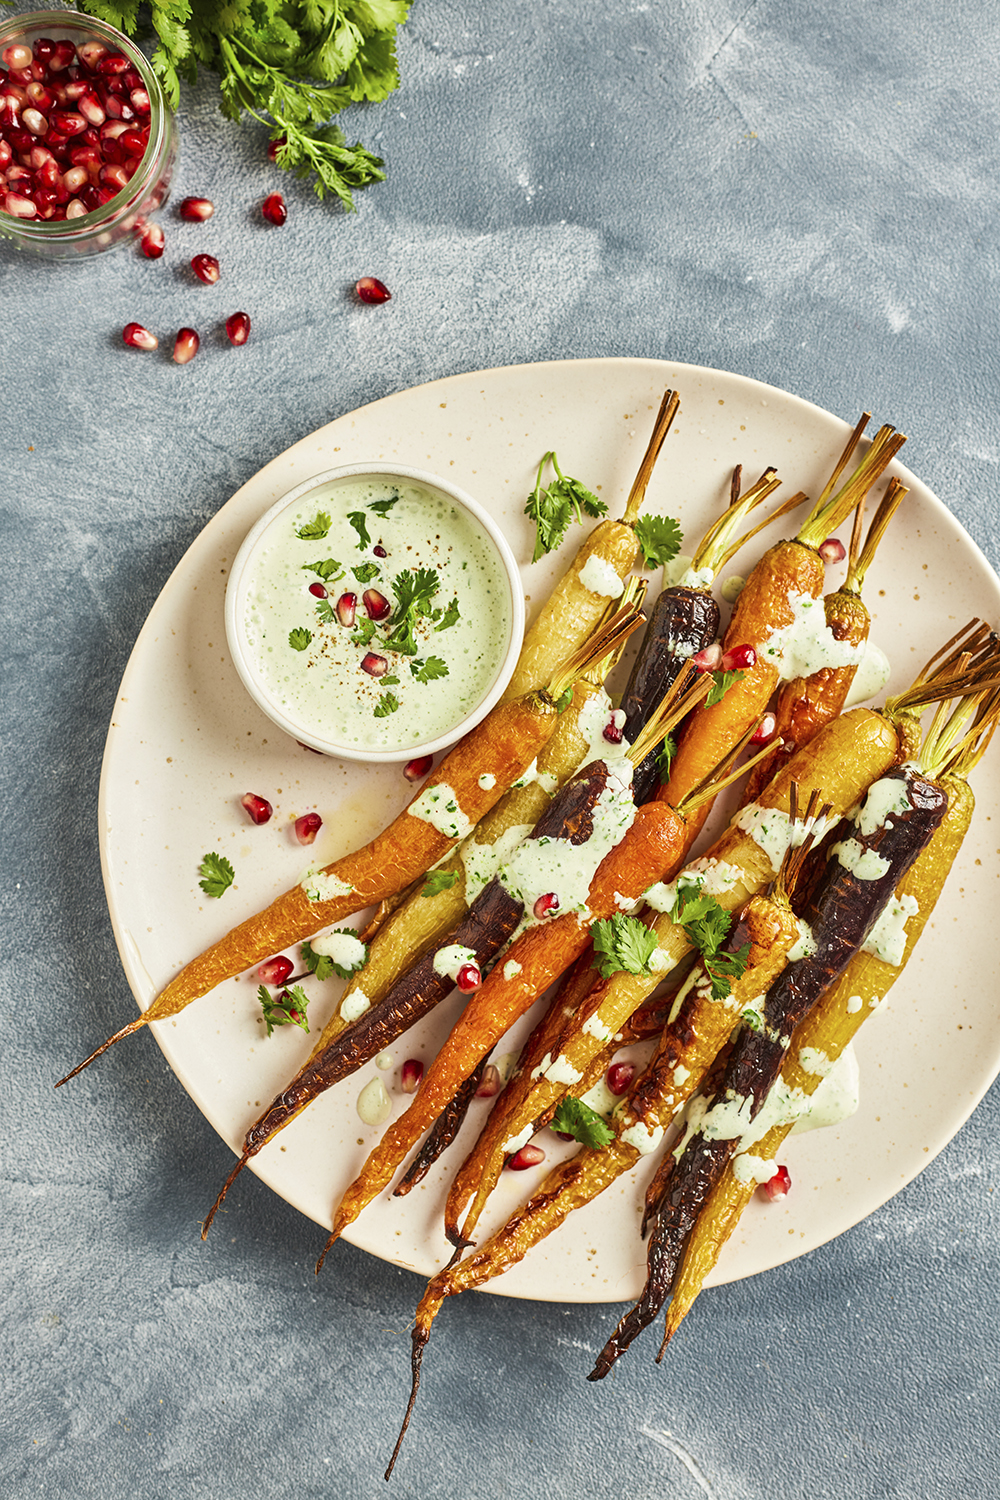 Roasted carrots with coriander sauce